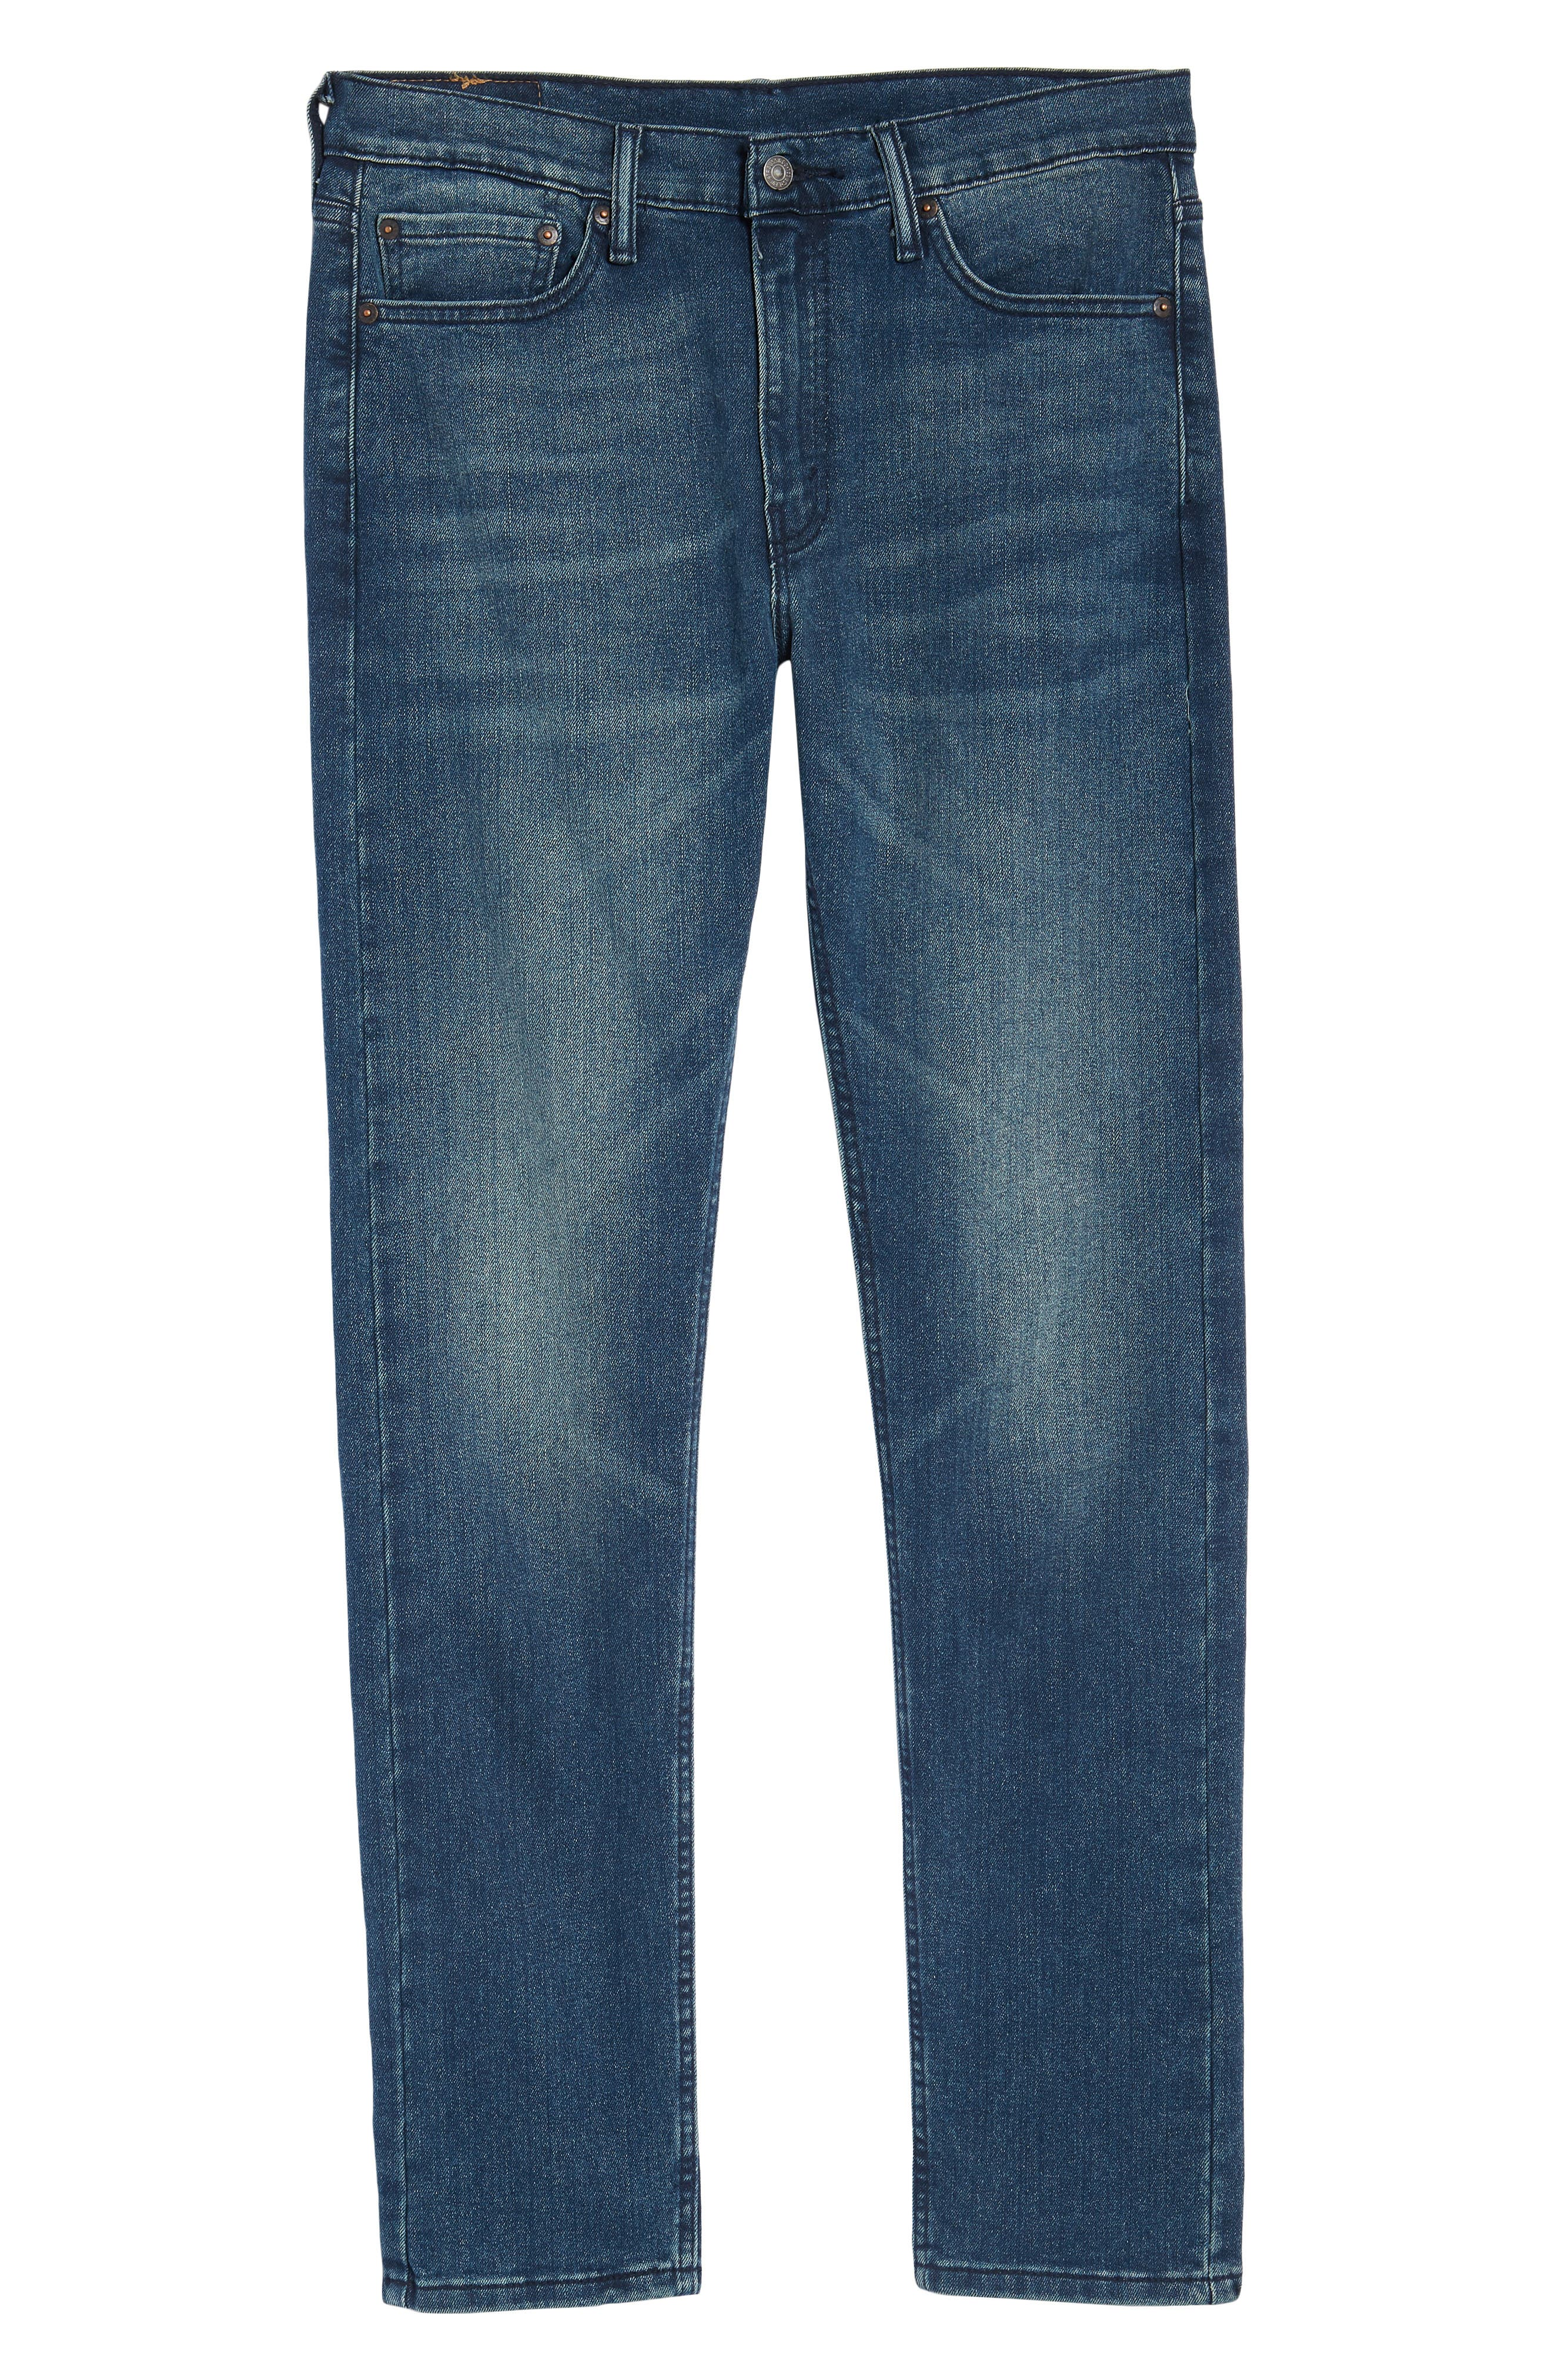 510<sup>™</sup> Skinny Fit Jeans,                             Alternate thumbnail 6, color,                             408